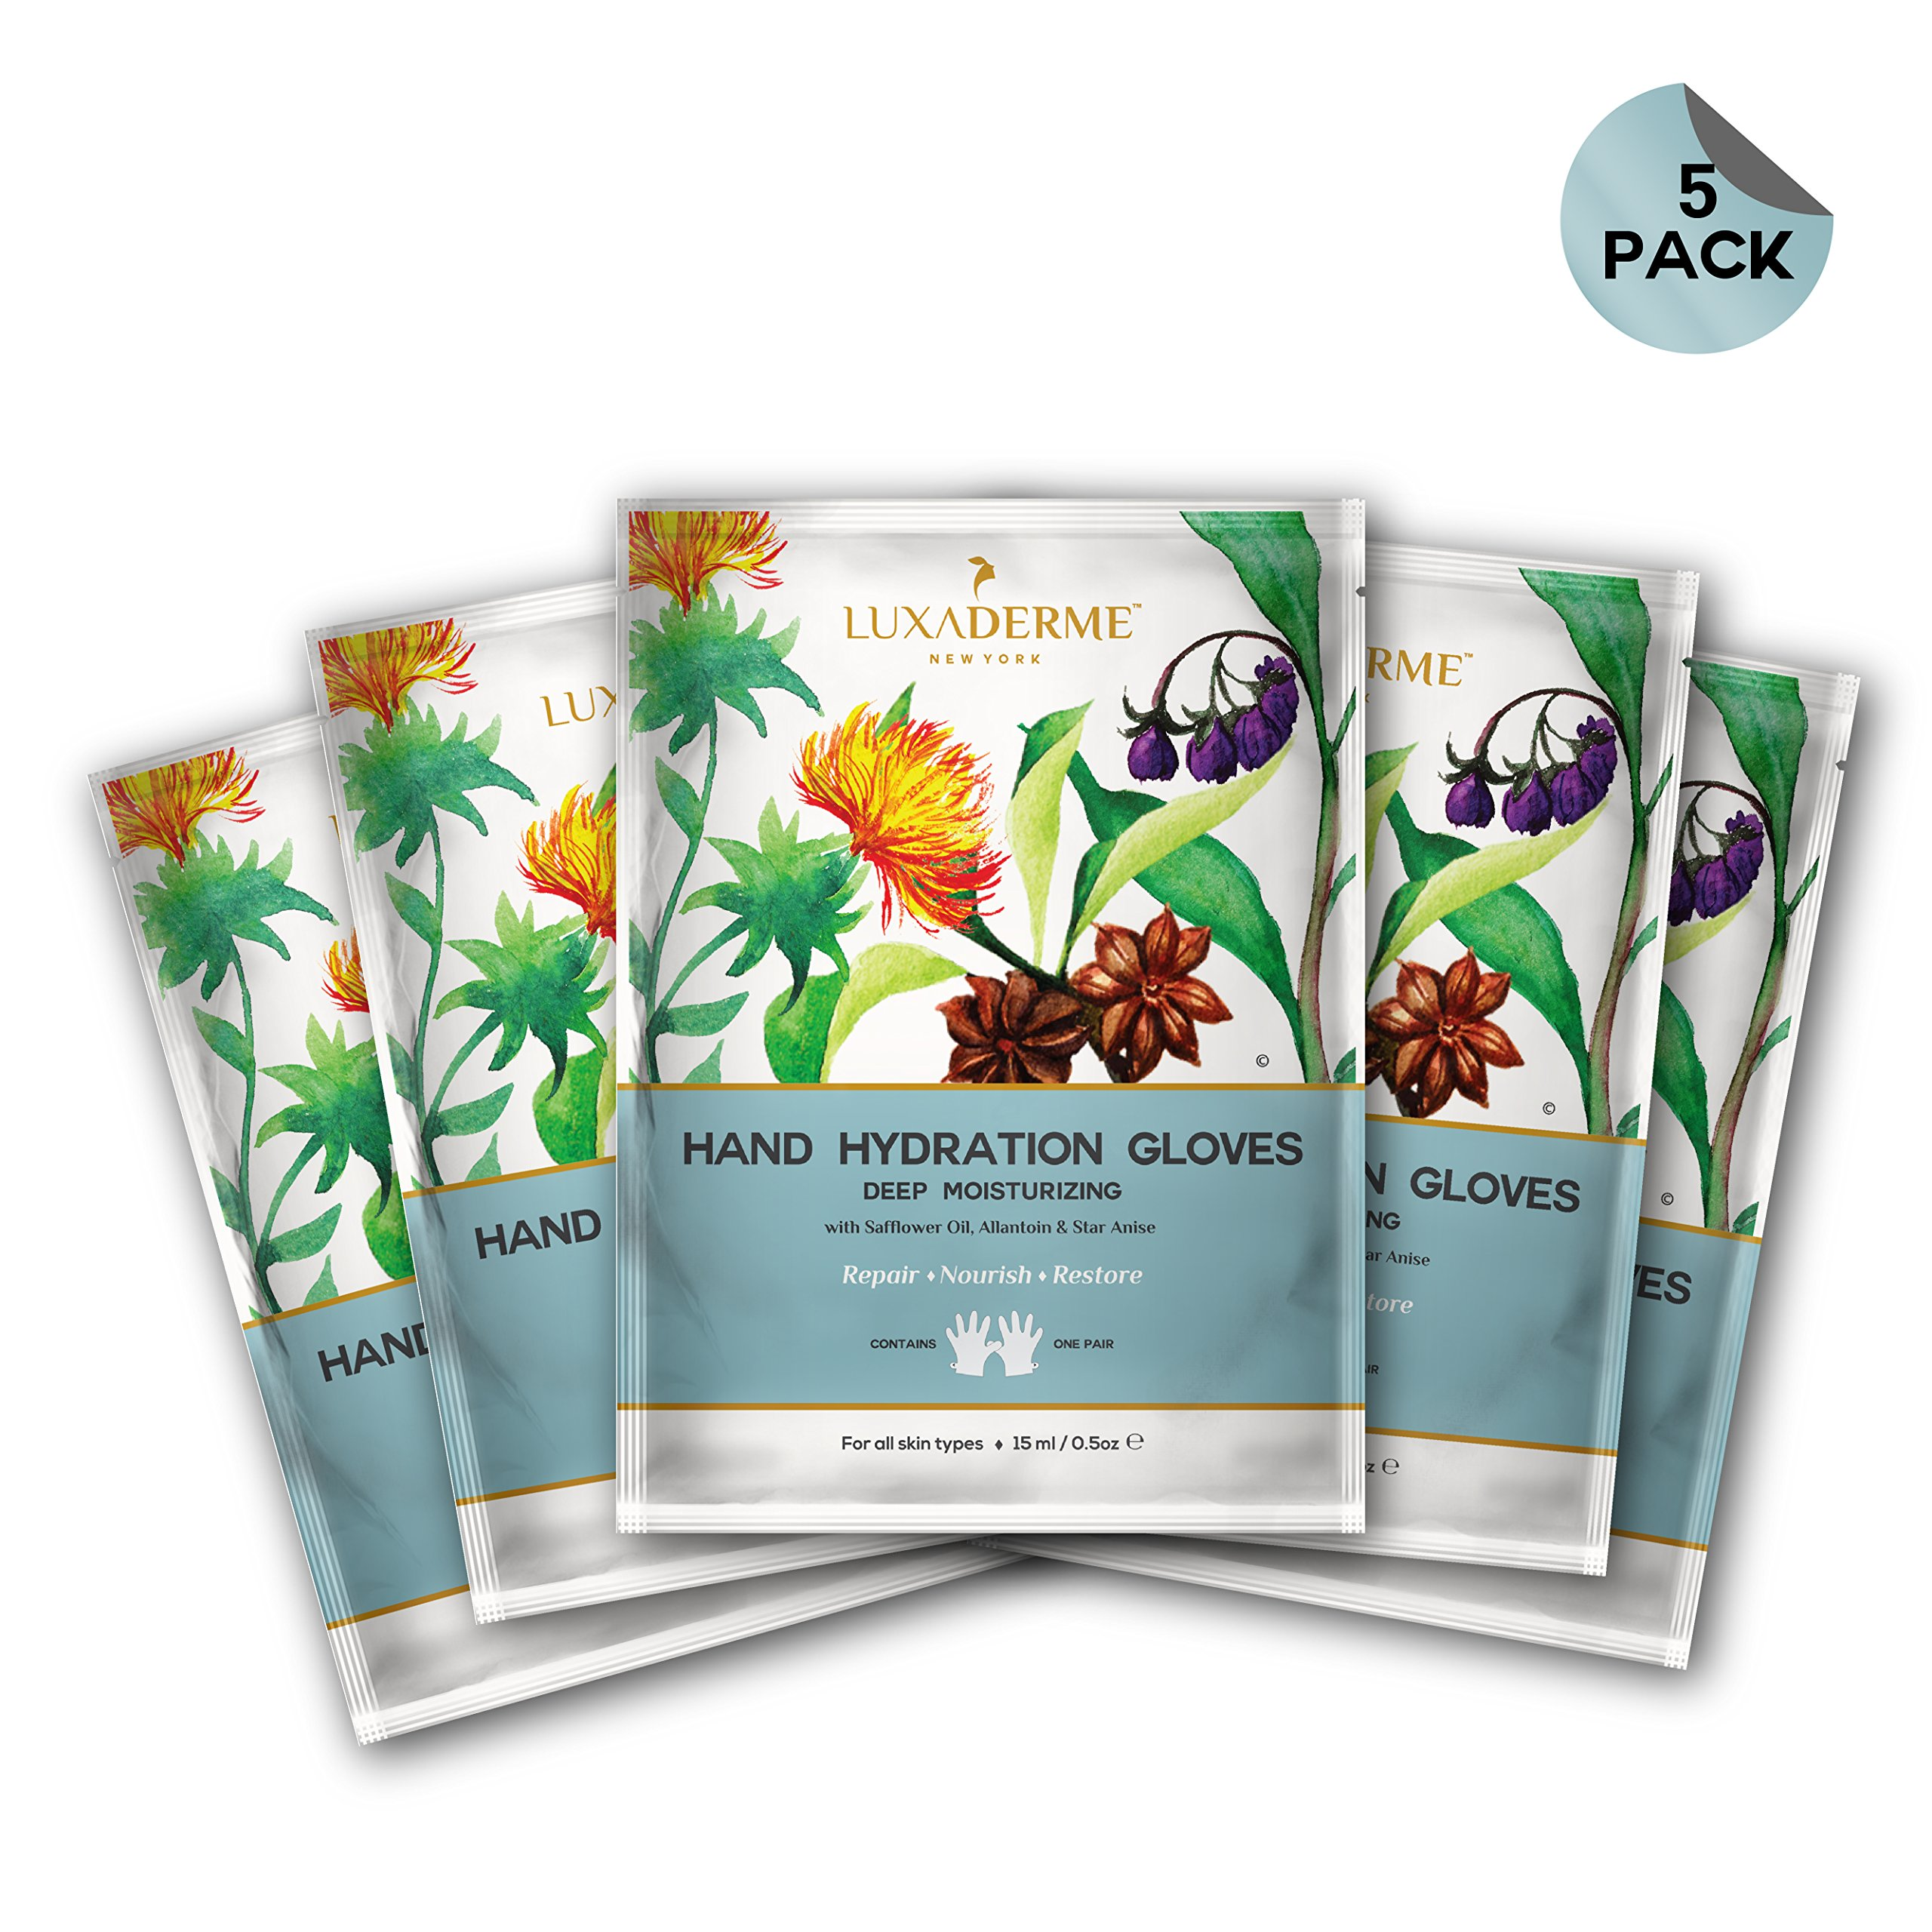 LuxaDerme Deep Moisturizing - Hand Hydration Gloves (Pack Of 5) Infused With Essence Containing Safflower Seed Oil, Allantoin, Botanical Extracts & Anti-Oxidants For Soft, Smooth & Supple Hands